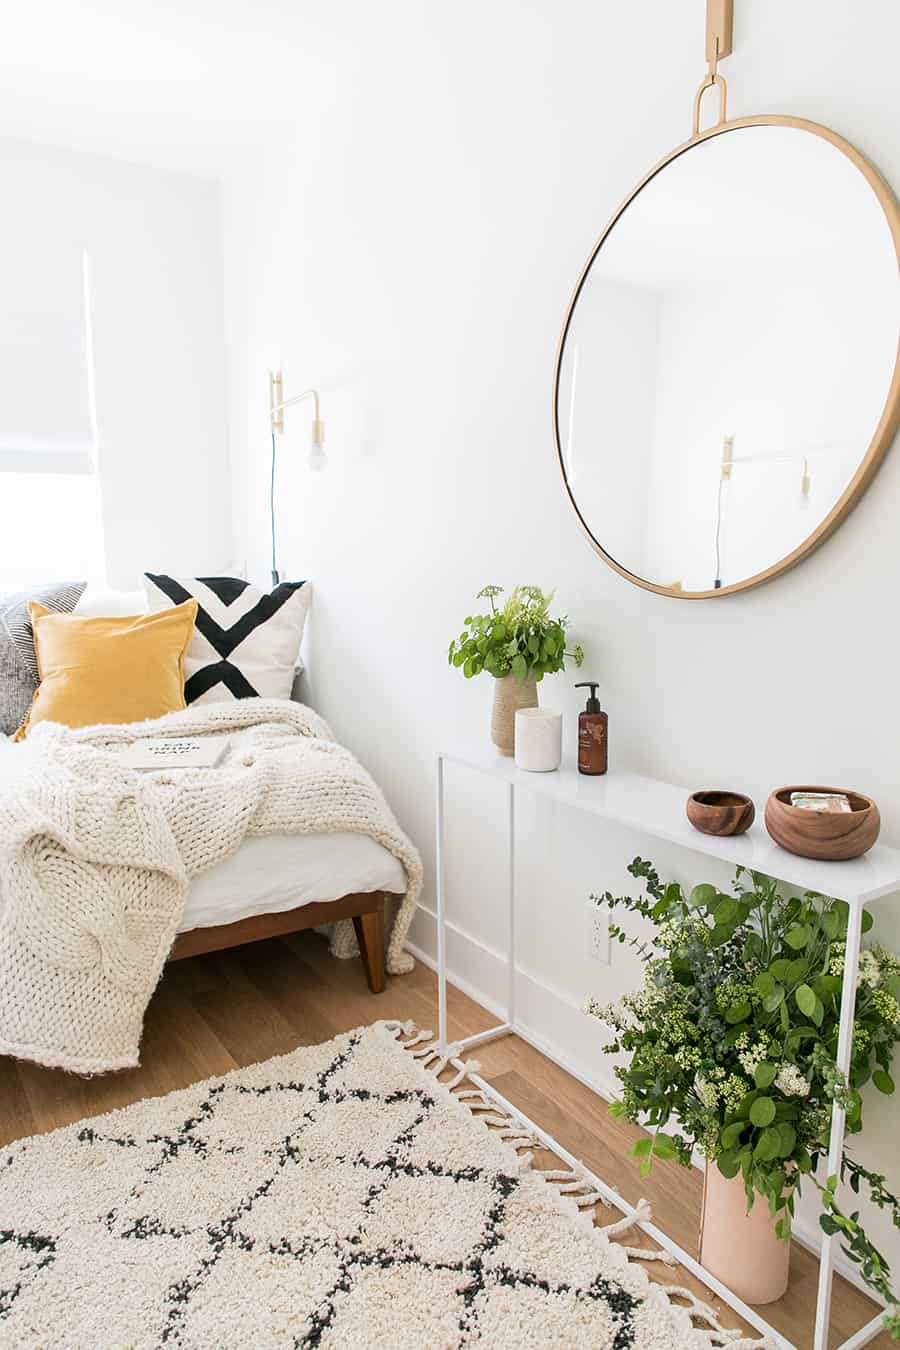 A guest bedroom retreat with rug, mirror, flowers, bed, pillows.